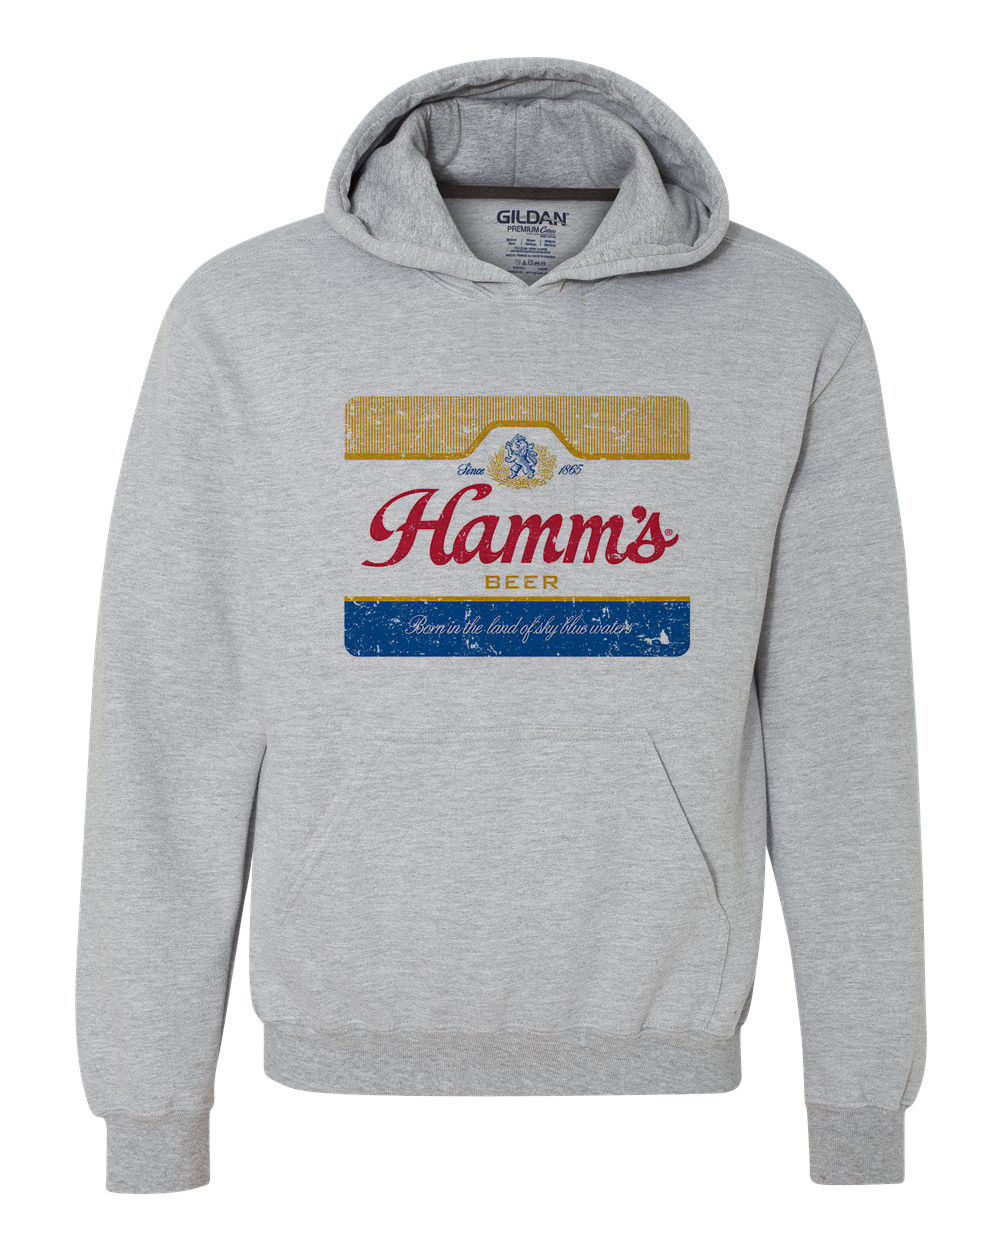 Hamm's Beer Hoodie retro vintage style distressed print grey graphic tee shirt